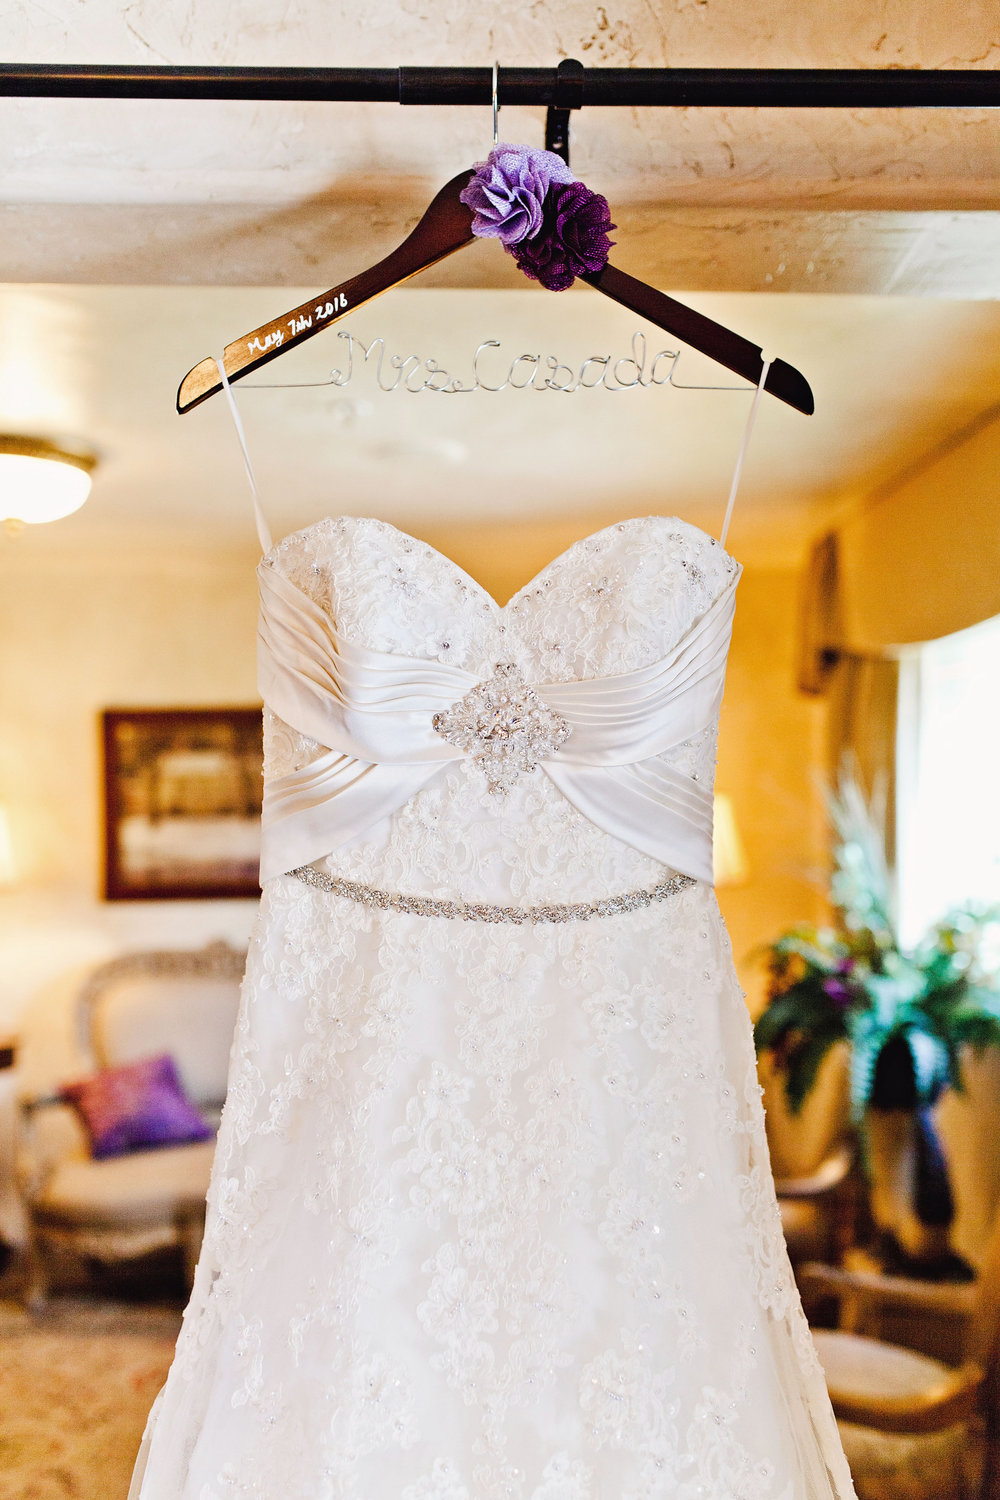 The Hanger - 1. Make sure you bring an appealing hanger for your wedding dress to be photographed with. It doesn't have to be fancy but nicer than a wire hanger.